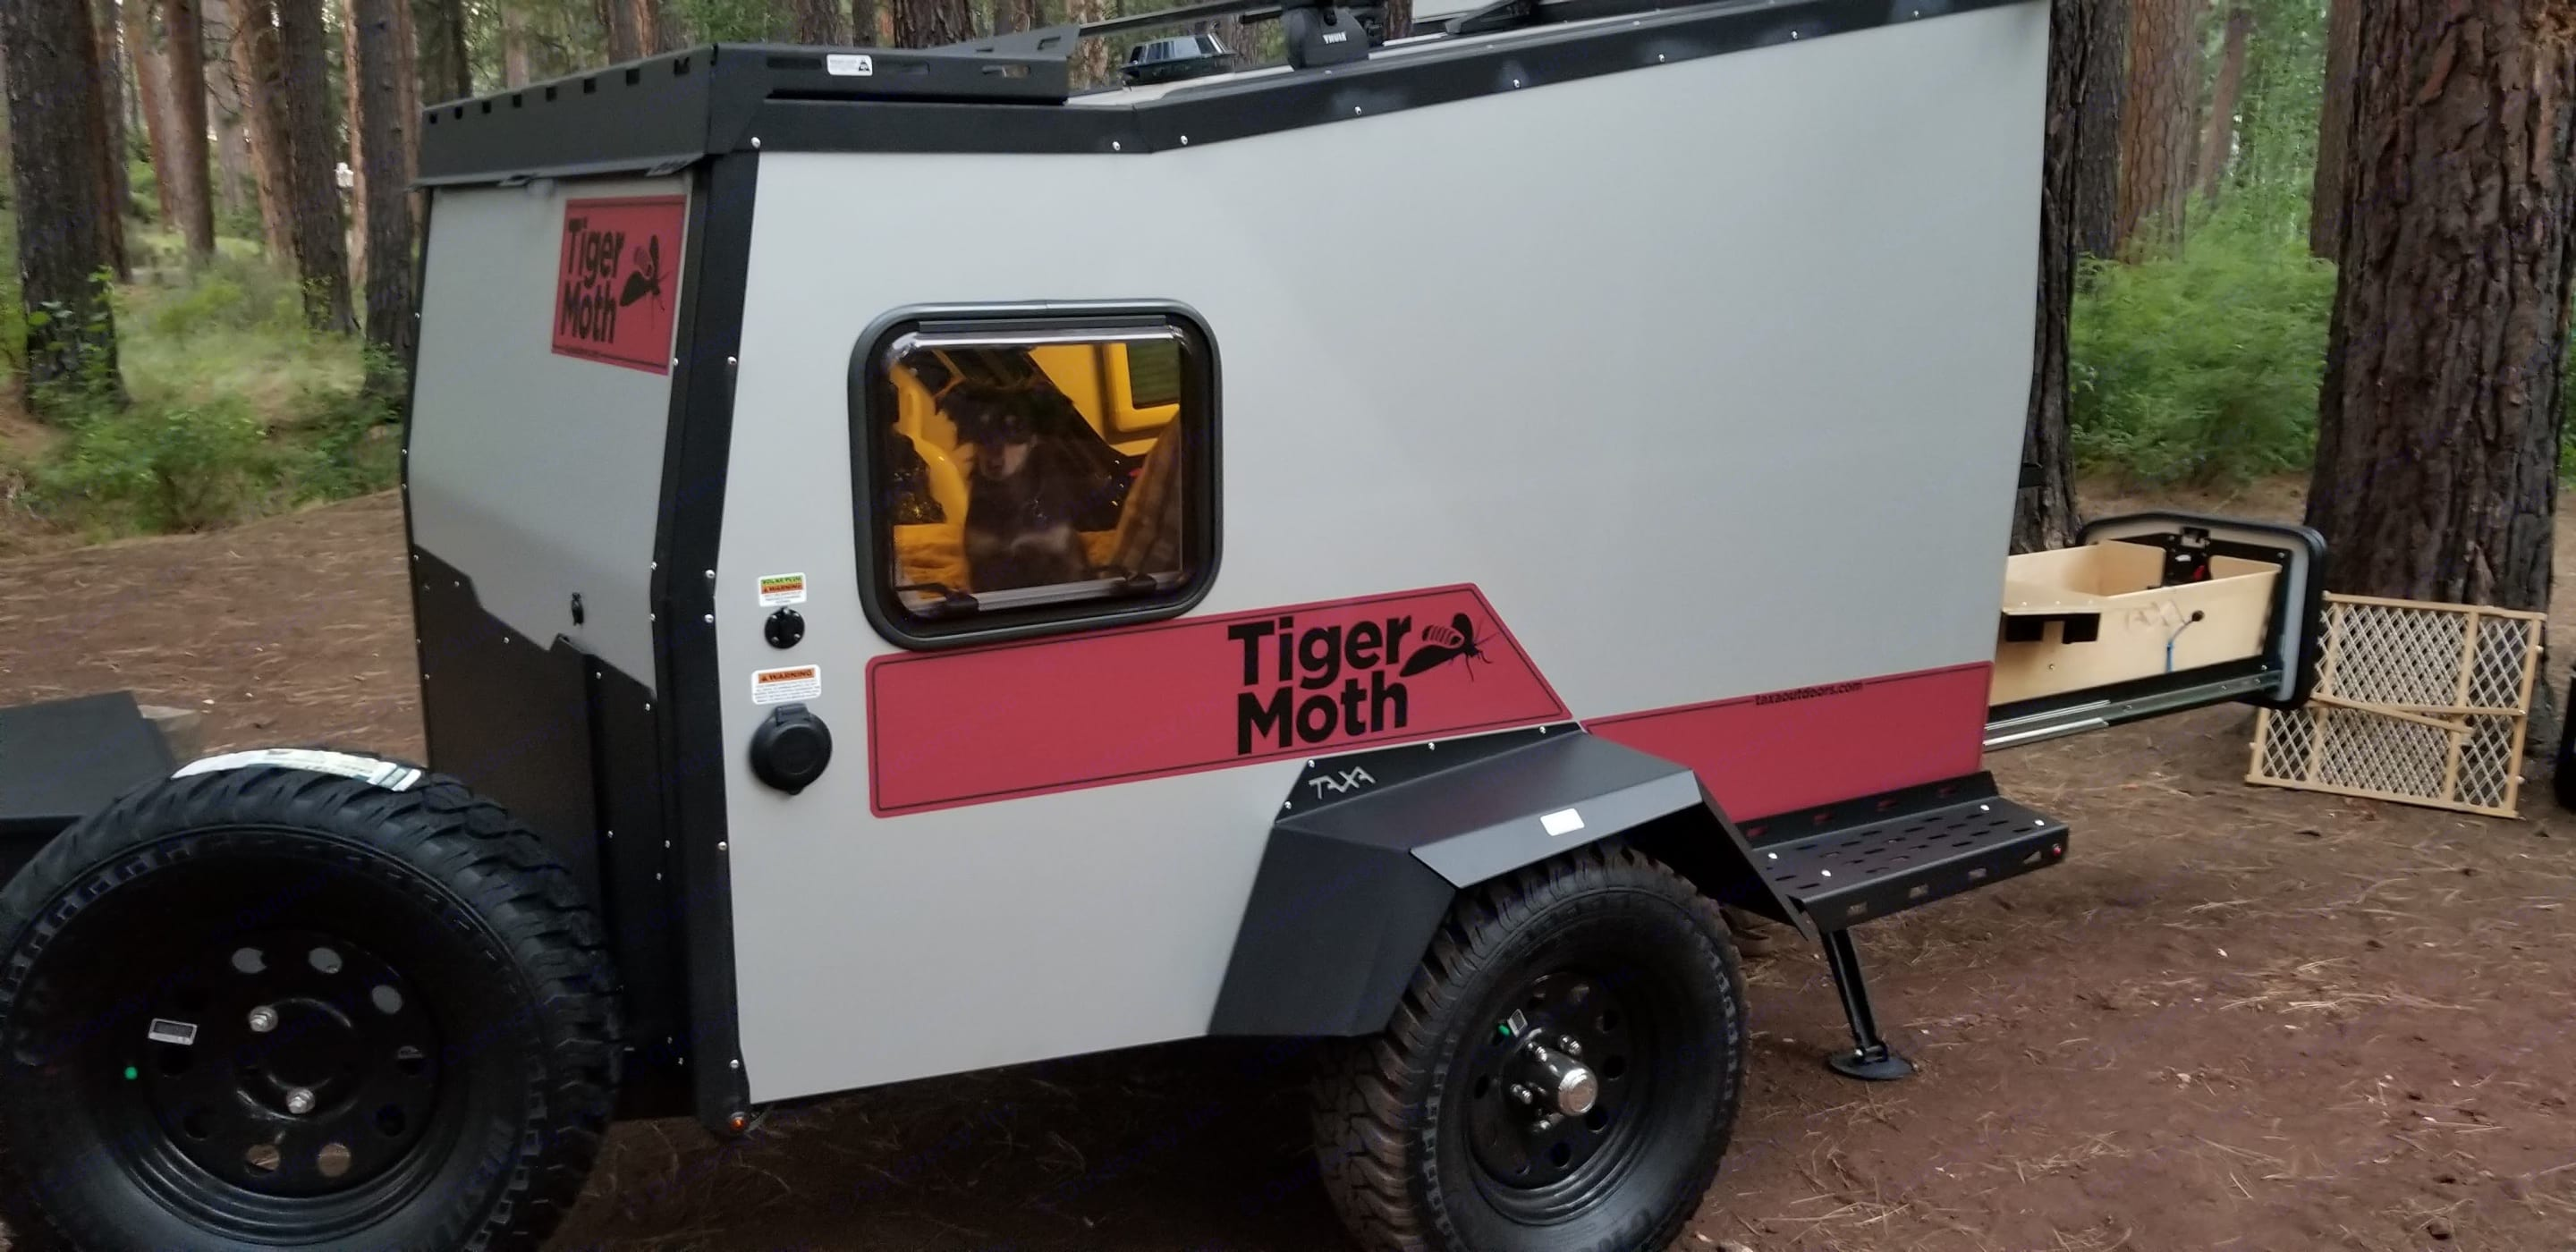 Our little dog loves sitting inside and people watching out the window.... TAXA Outdoors Tigermoth Camper 2018